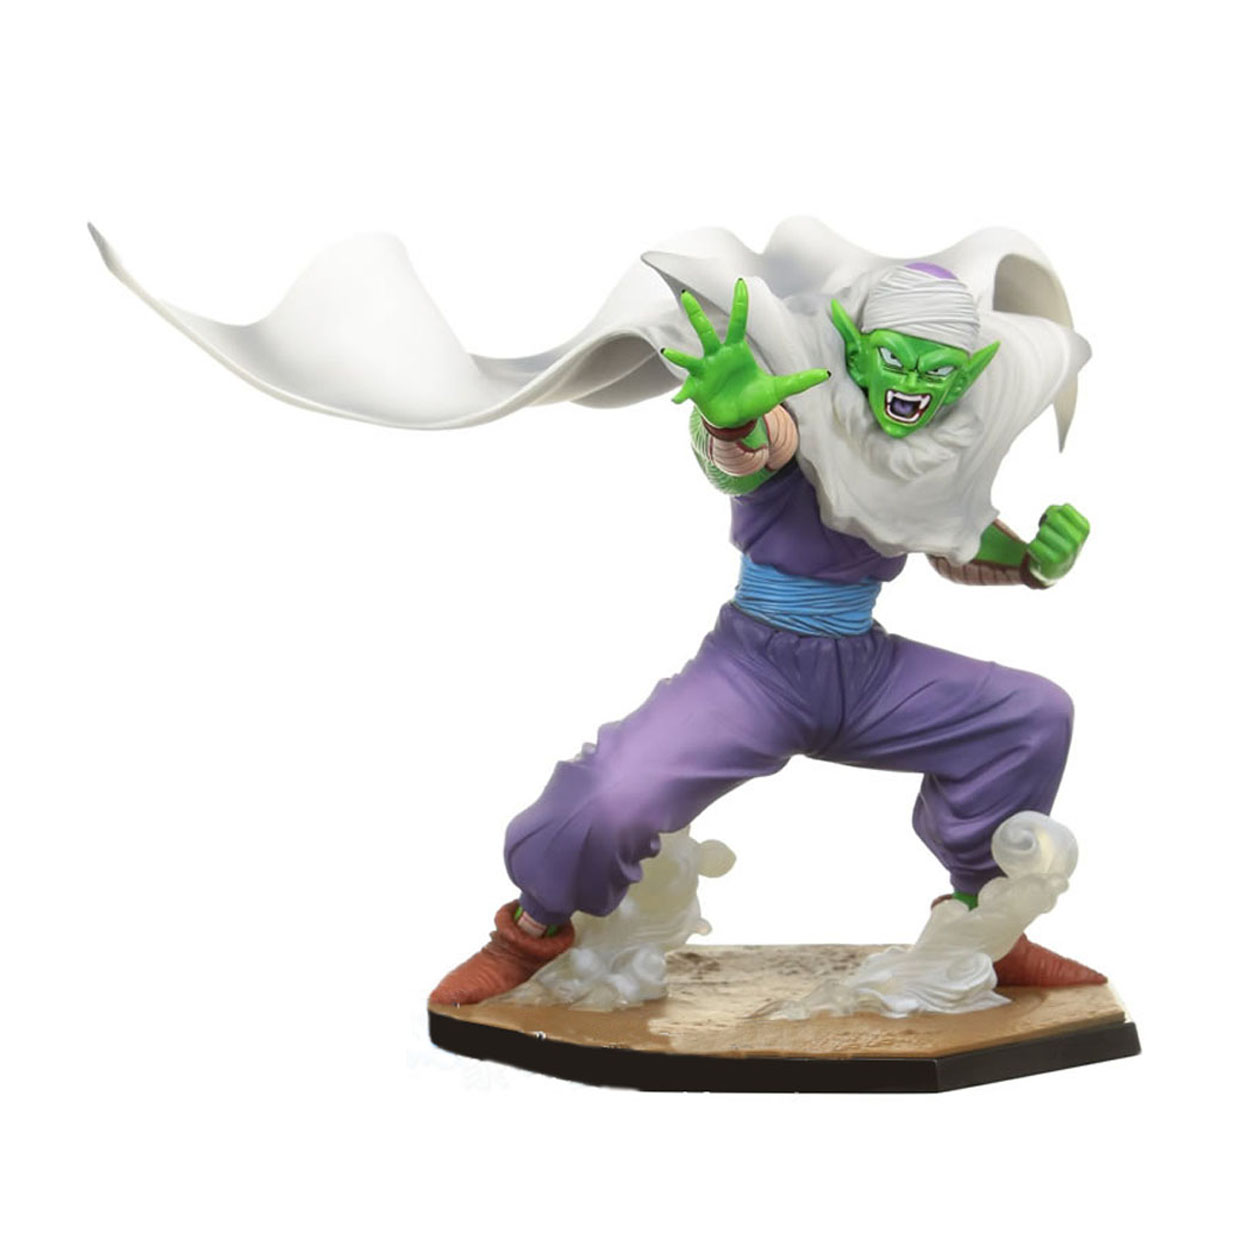 Chanycore 15CM Anime Dragon Ball Z Son GOKU Piccolo Action Figures crystal balls PVC Limit Boxed For Kids Gift Toy 0393 7cm large size jp hand done animation crystal dragon ball set genuine model toy gift action figures anime toys kids